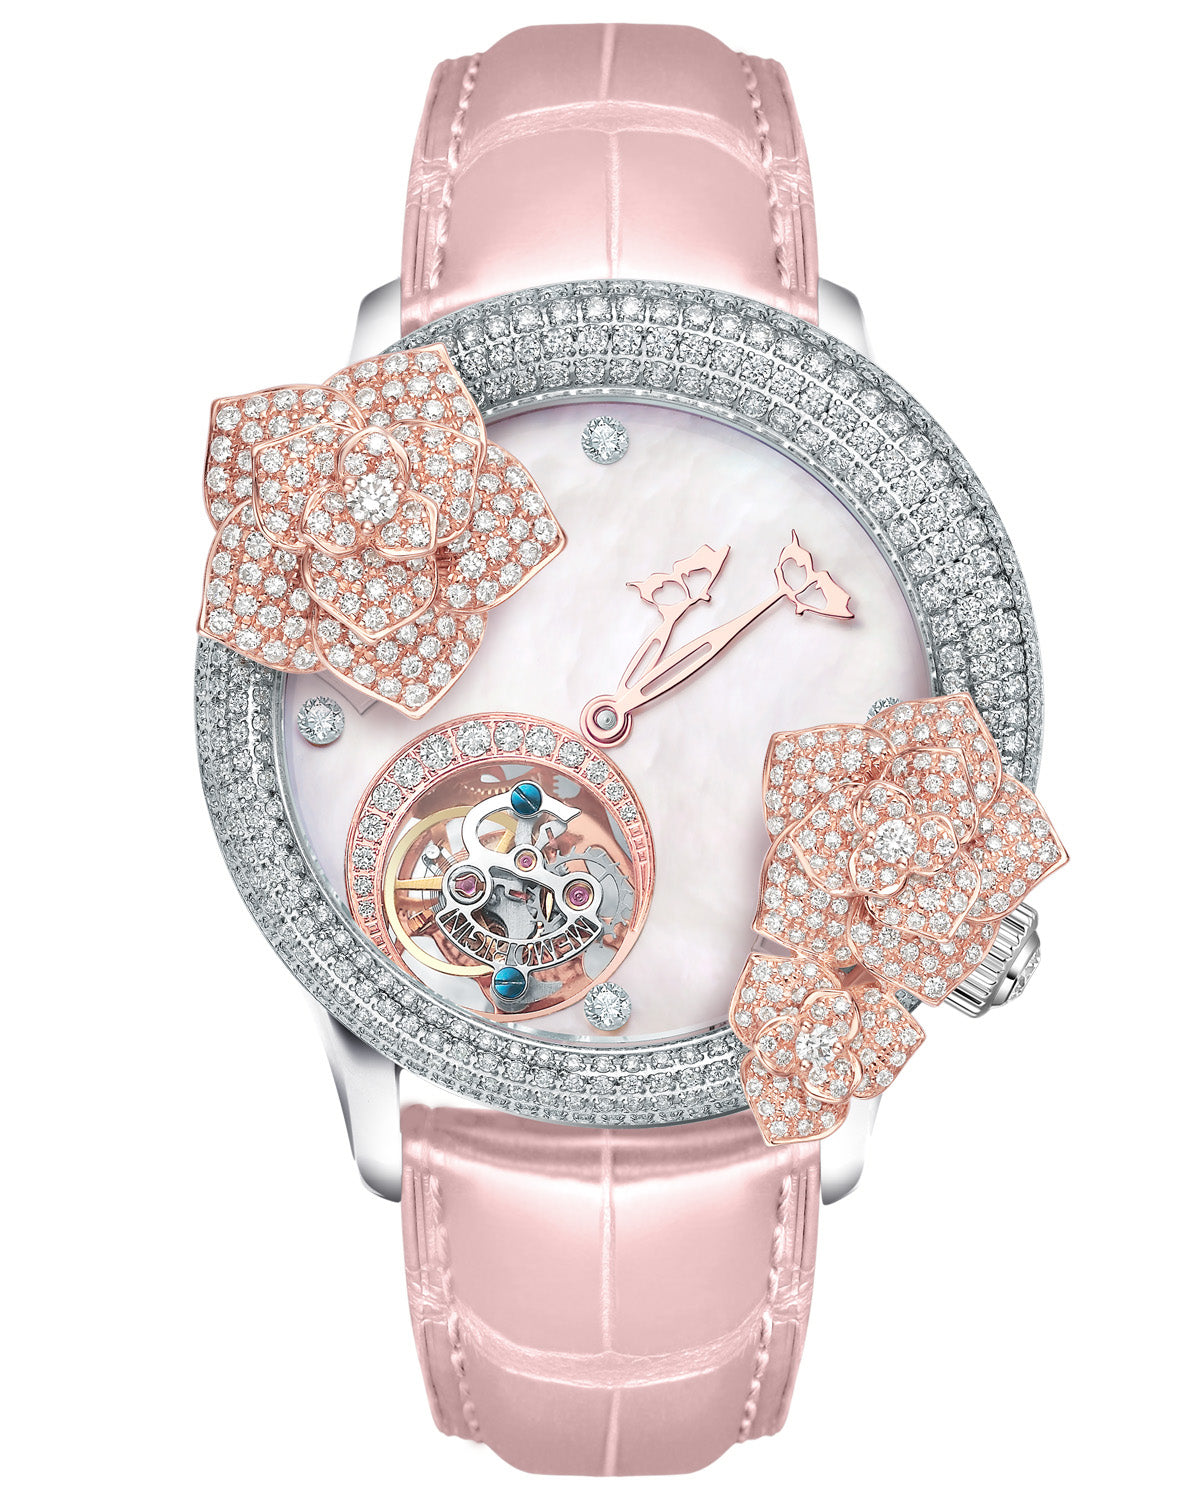 Memorigin Women's Watch Tourbillon Butterfly Rose 7-in-1